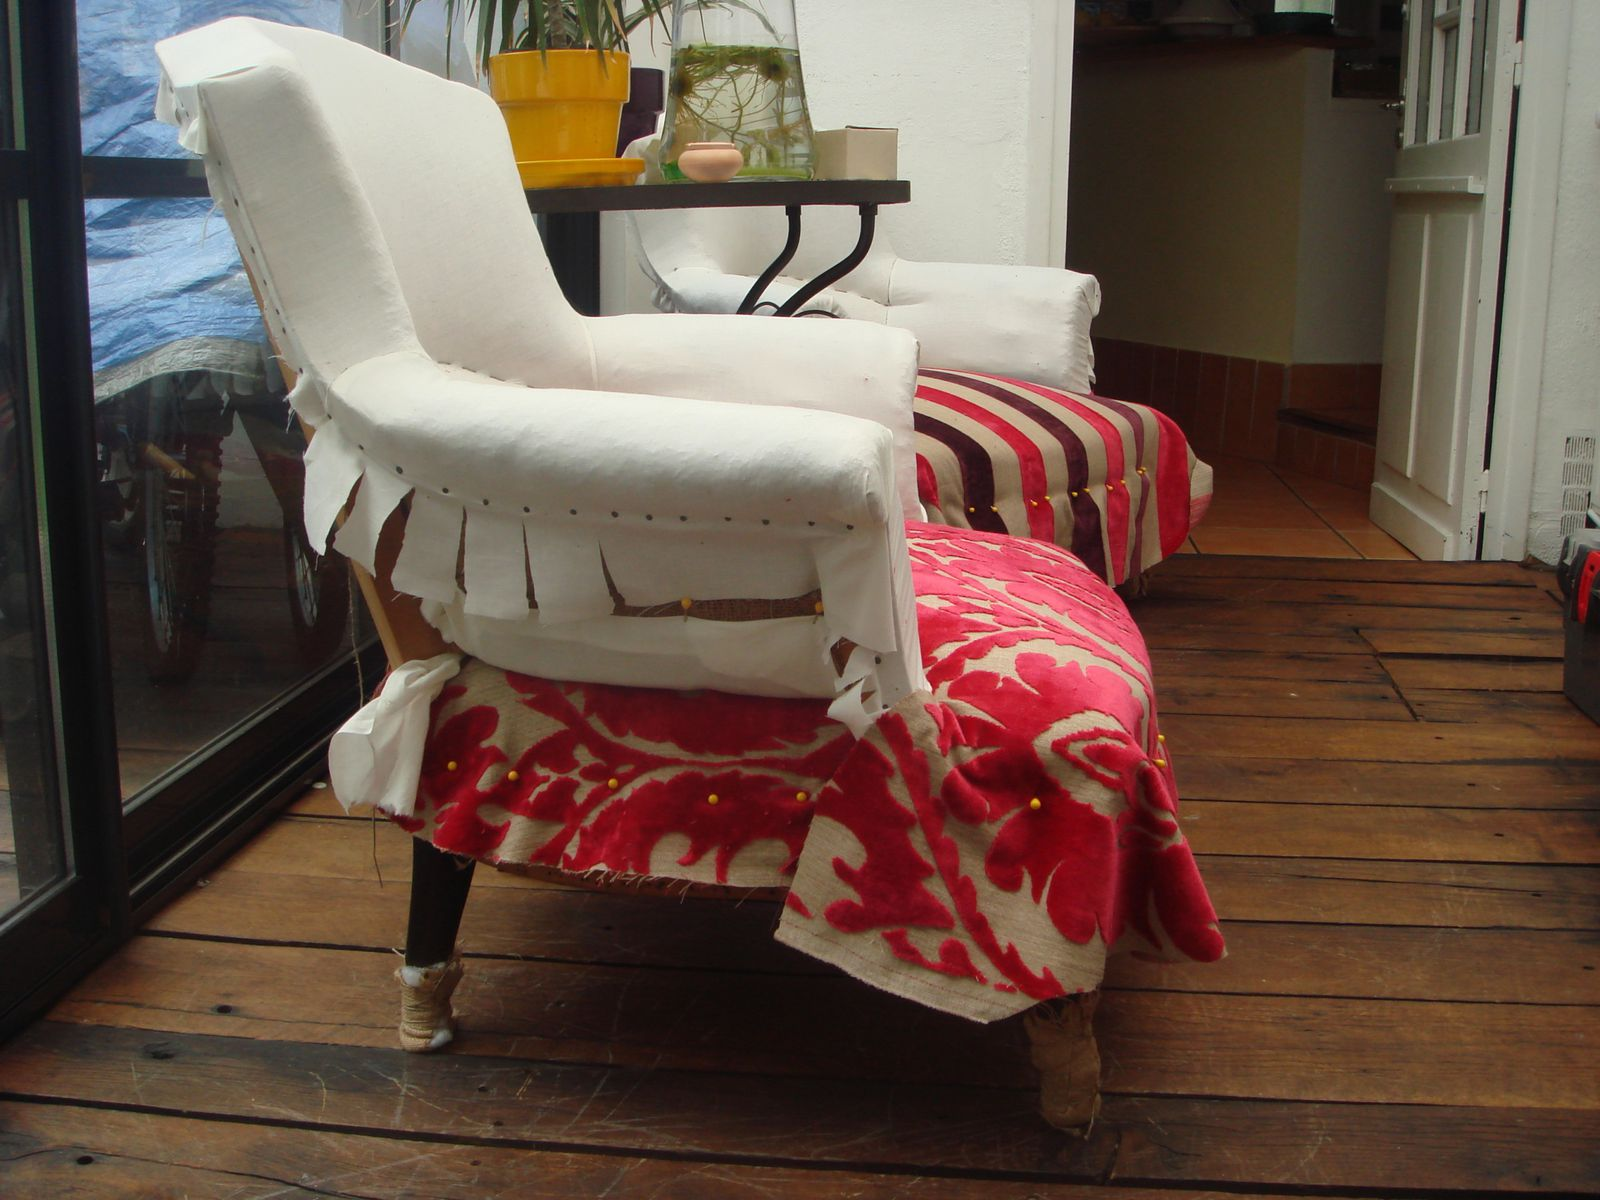 Crapaud Co Made In Chiner - Tapisser fauteuil crapaud